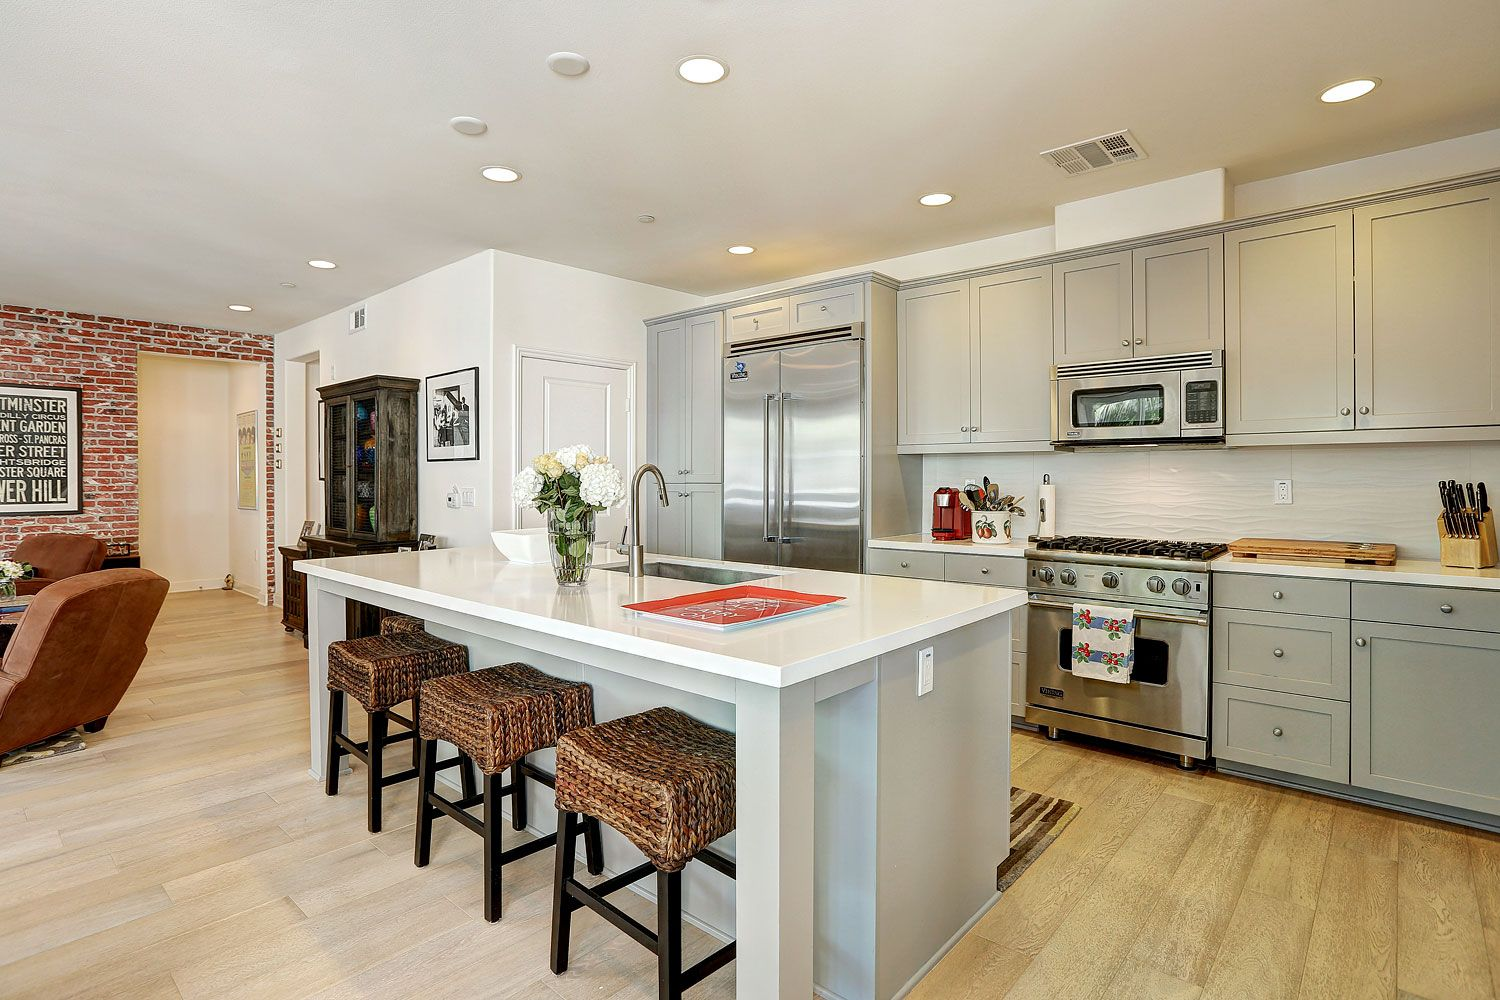 12883 Runway Rd Los Angeles Ca 90094 Mls 17 191434 With Images Home Grey Cabinets Los Angeles Homes